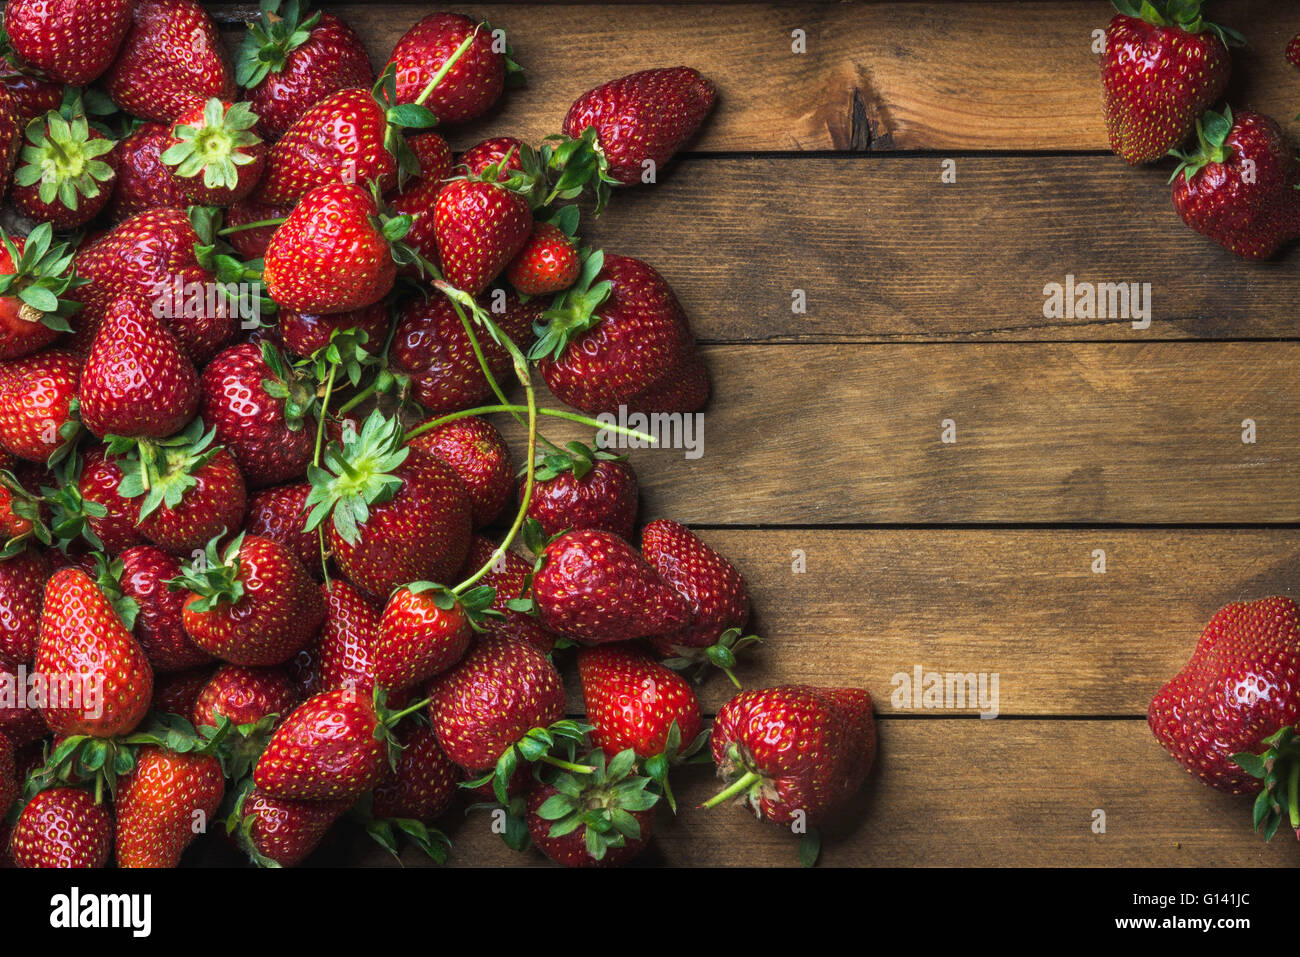 Summer fruit food frame. Strawberries over natural wooden background. Top view, copy space - Stock Image